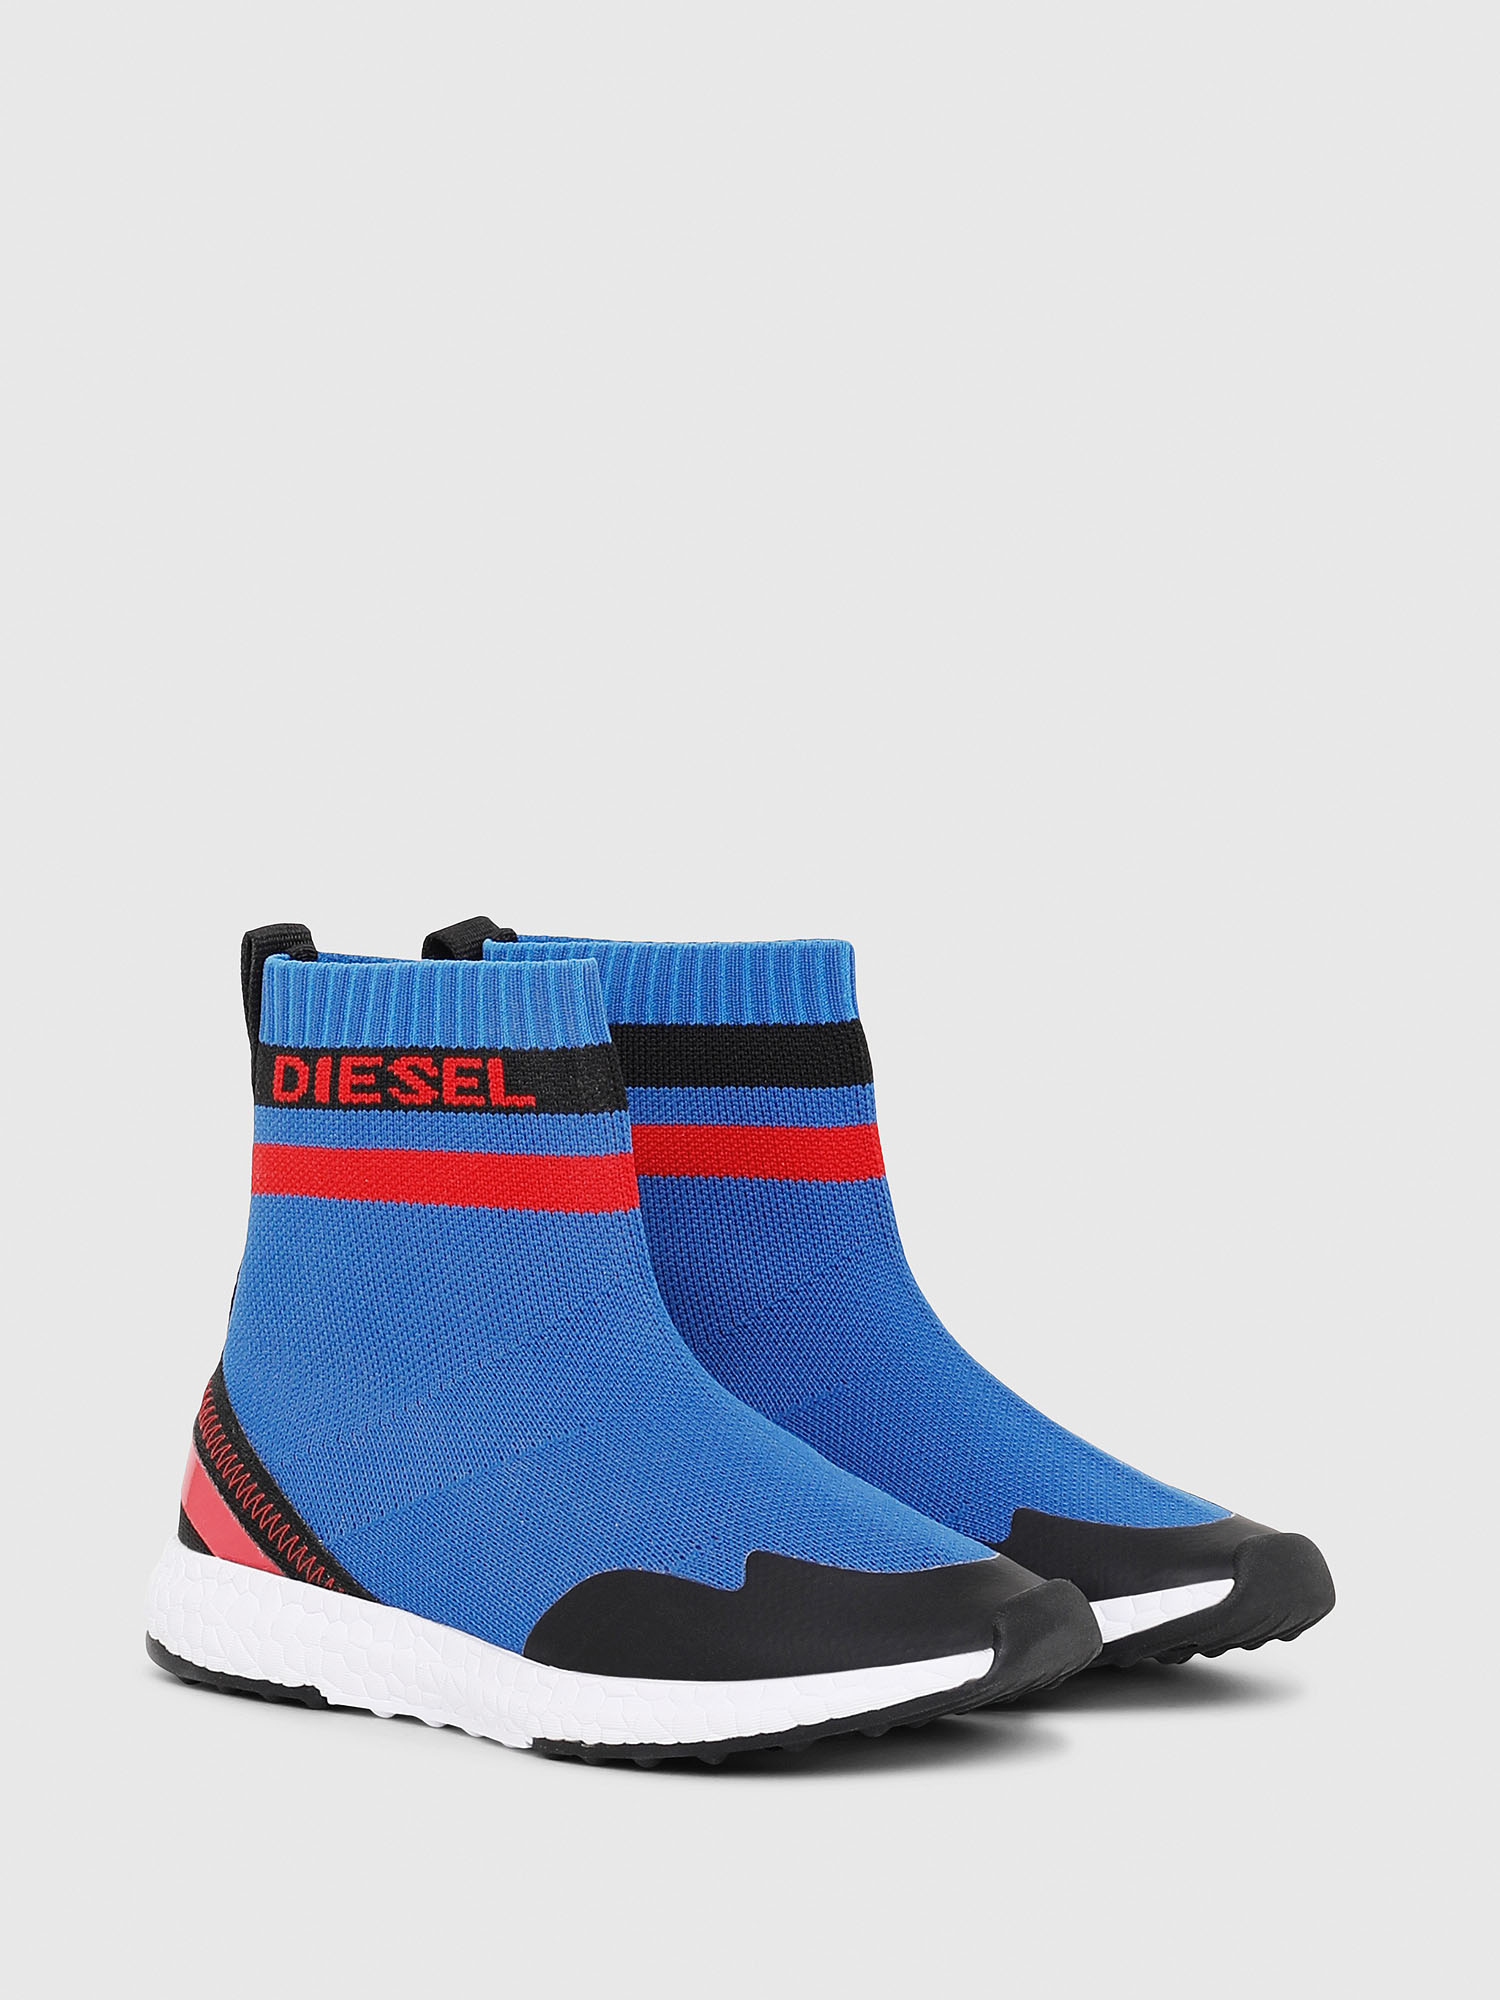 Diesel - SLIP ON 03 S-K SOCK,  - Footwear - Image 2